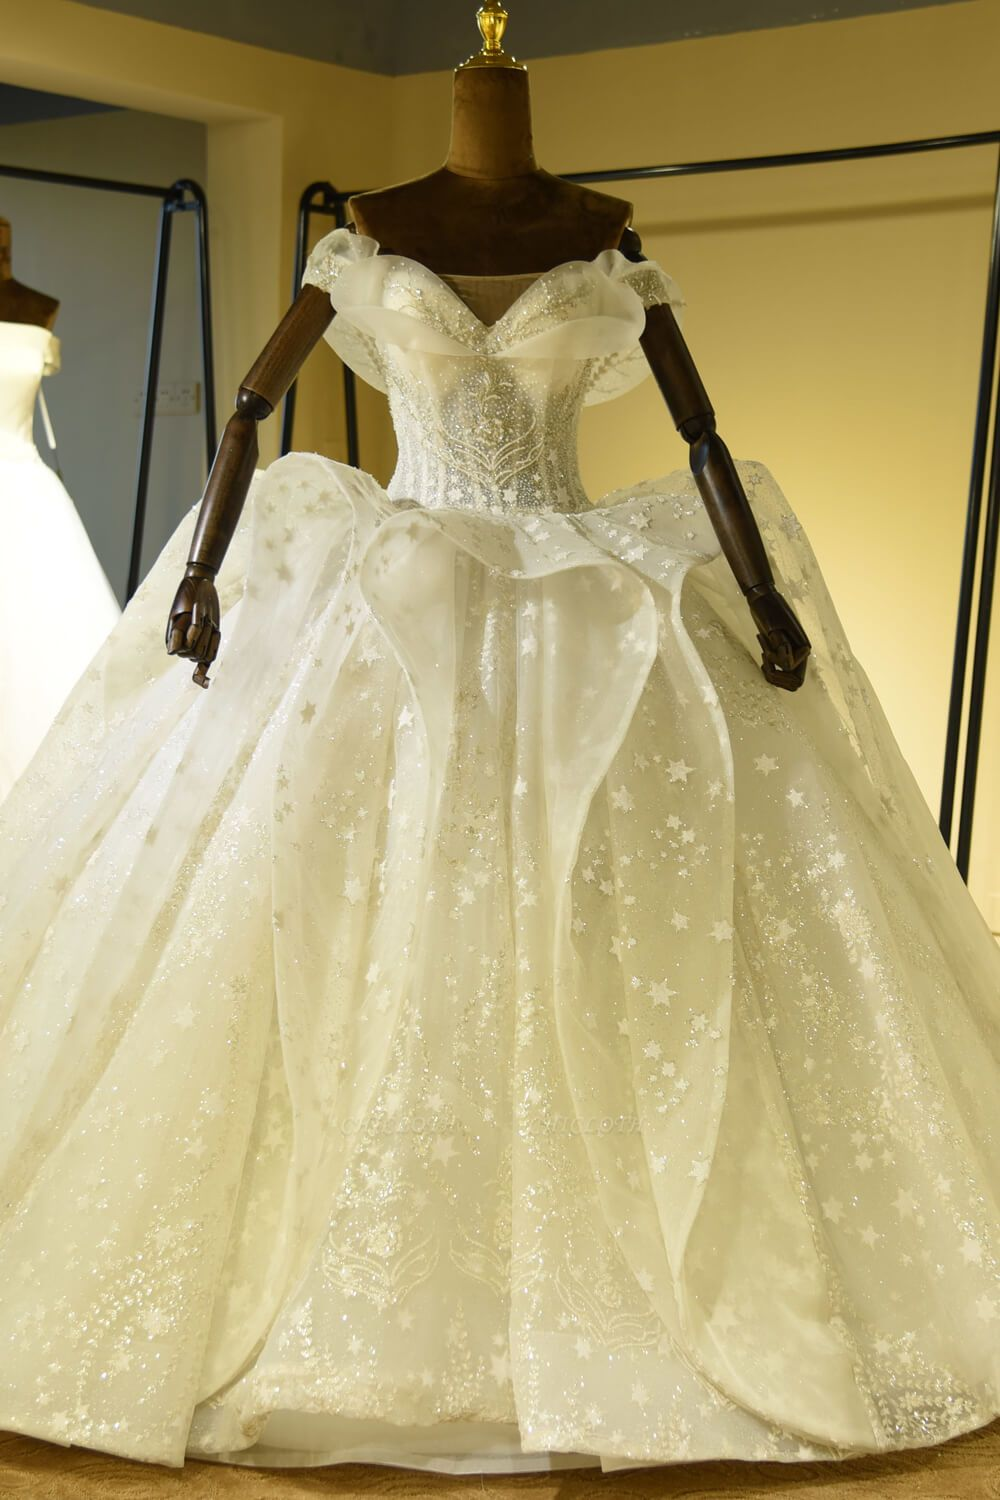 Chicloh Eye-catching Lace-up Tulle Ball Gown Wedding Dress